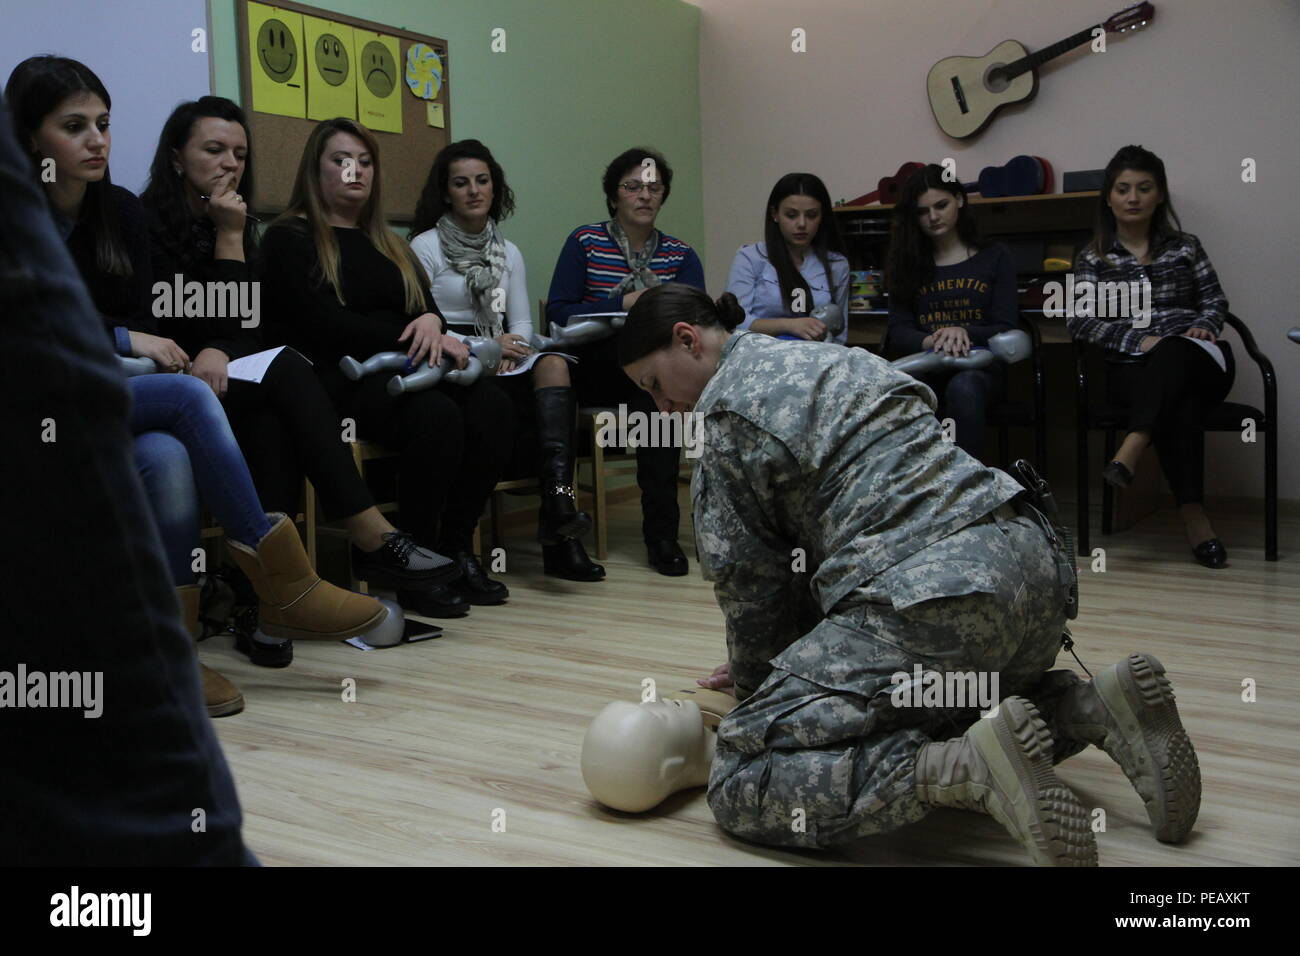 U.S. Army Staff Sgt. Sara Motyka, a Connecticut National Guard Soldier deployed to Kosovo with 1st Battalion, 169th Aviation Regiment, demonstrates the proper technique for chest compressions during a Nov. 14, 2015, CPR certification class for teachers and caregivers at the PEMA Daycare Center in Pristina, Kosovo. PEMA provides professional social services for children with disabilities as well as educational classes to the parents, families and caregivers. (U.S. Army photo by Sgt. Gina Russell, Multinational Battle Group-East) Stock Photo